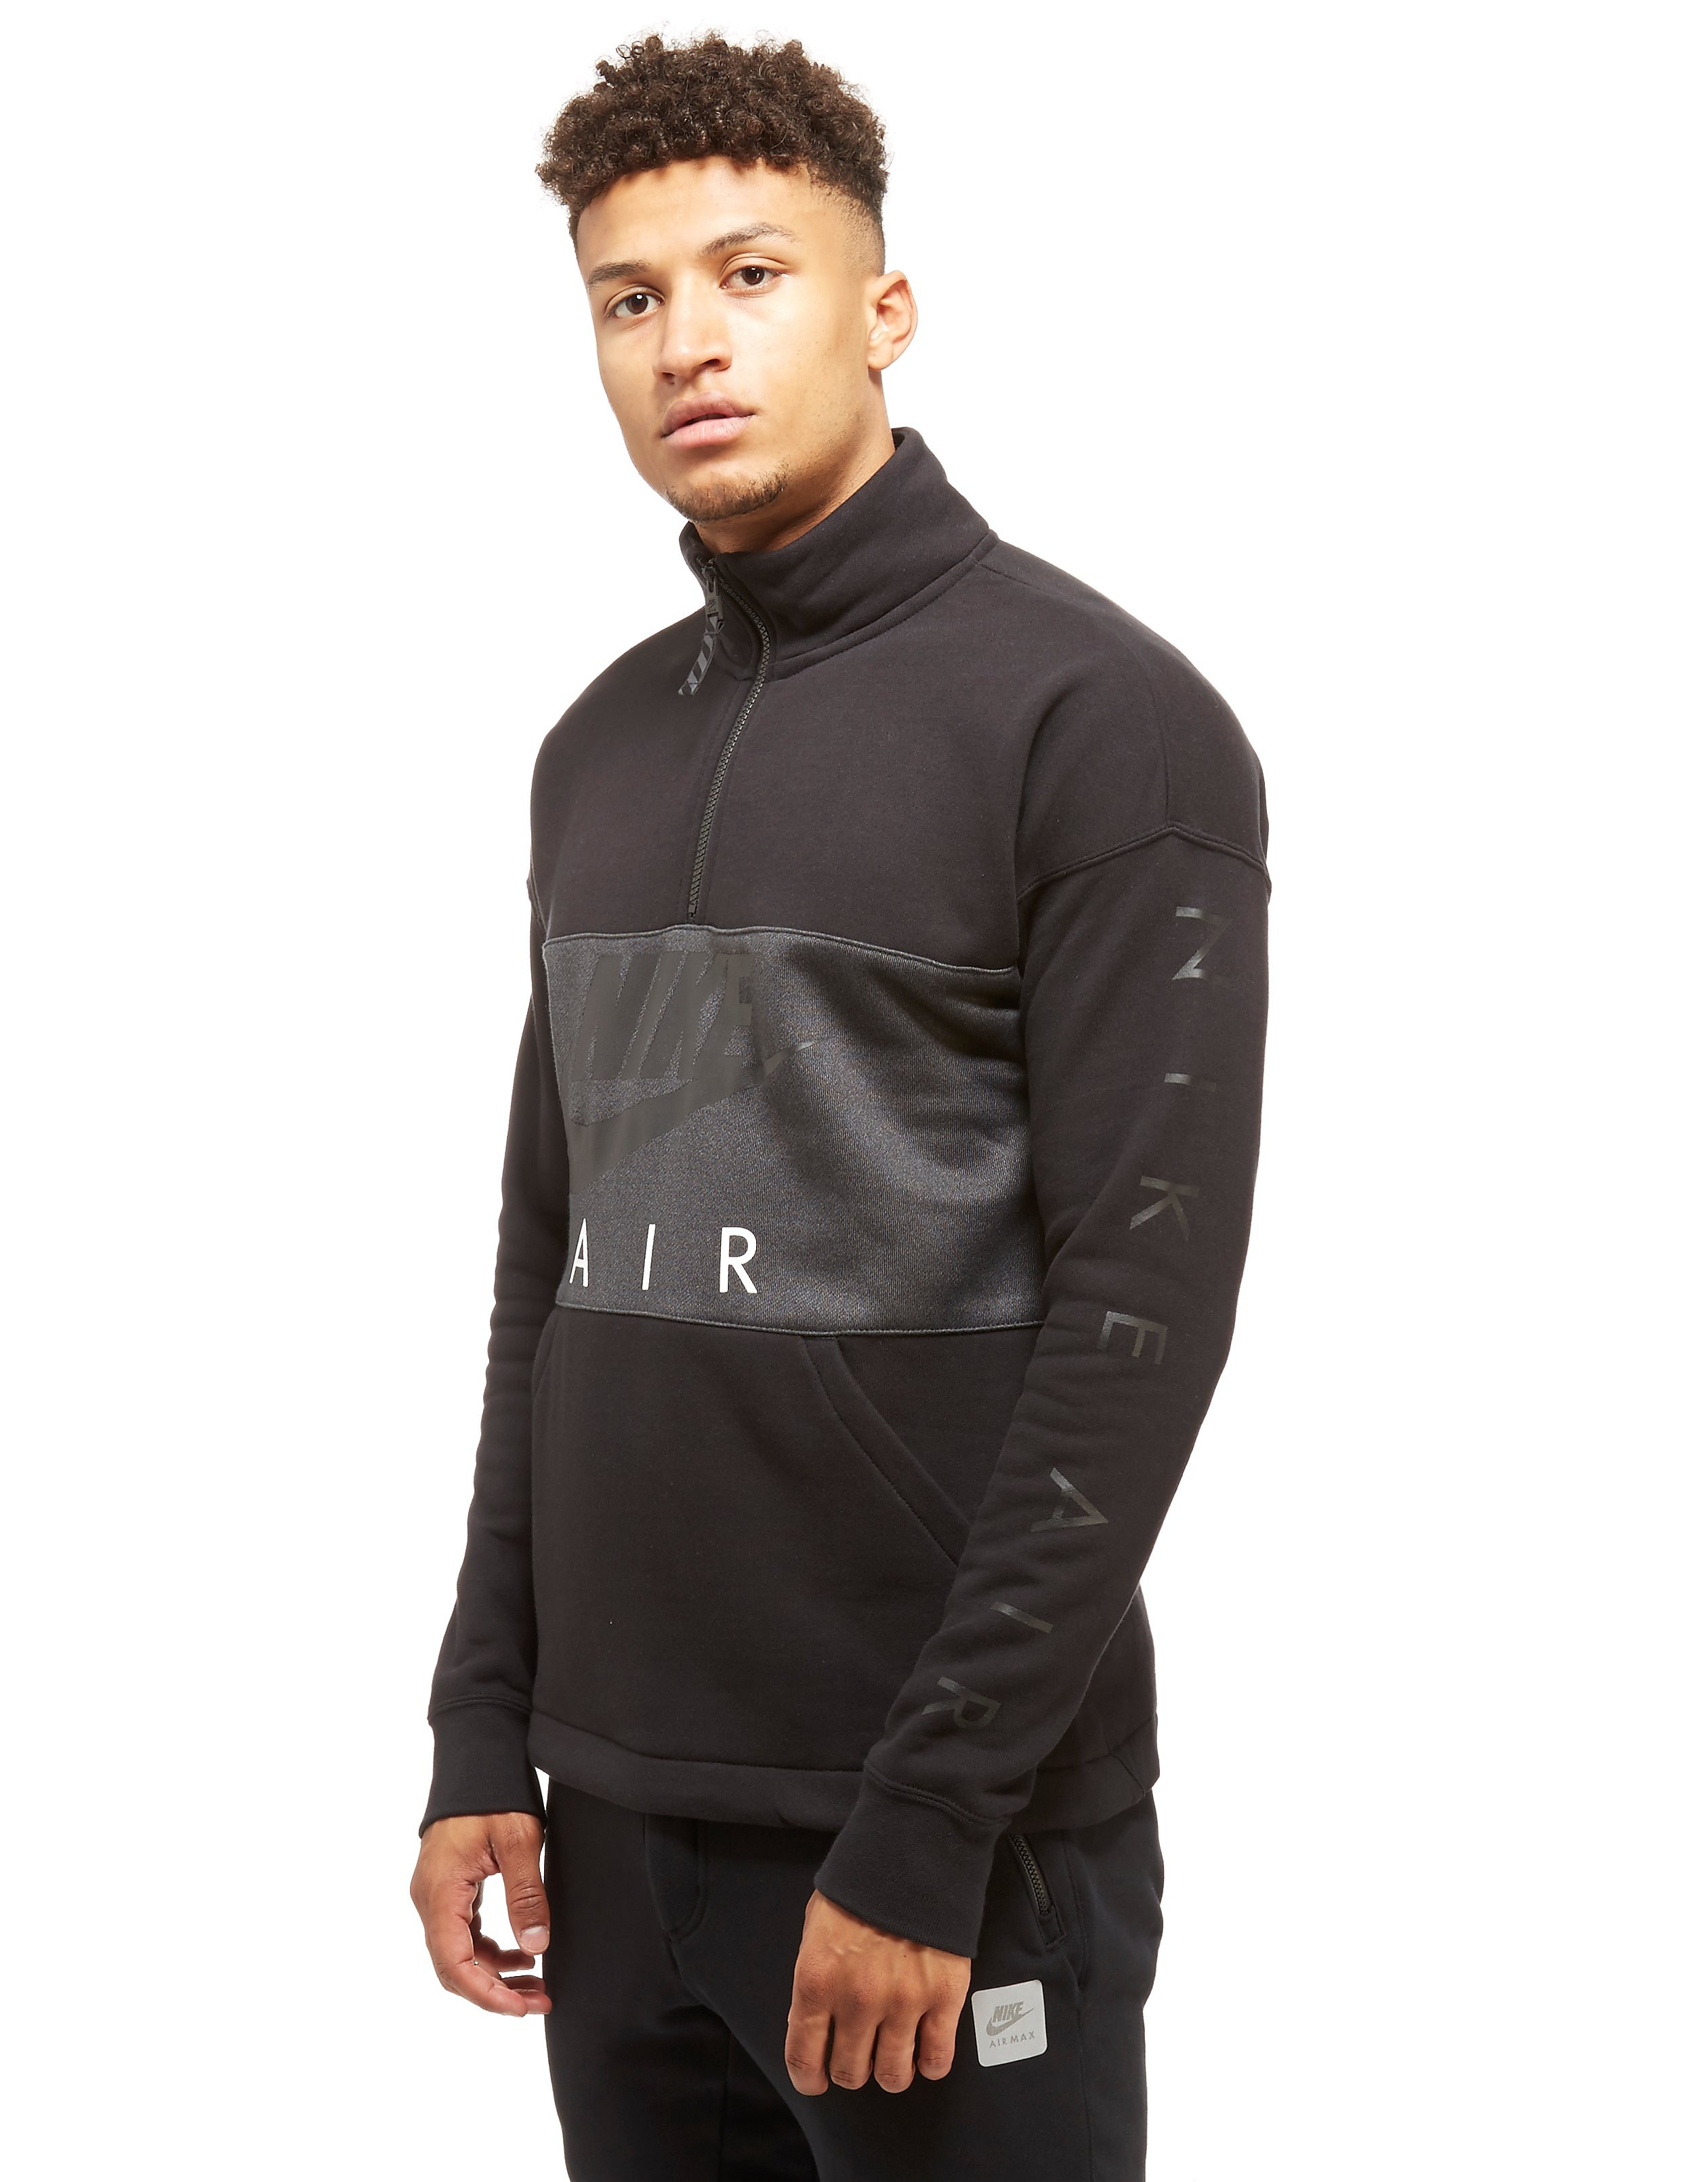 Nike Air Half Zip Sweatshirt